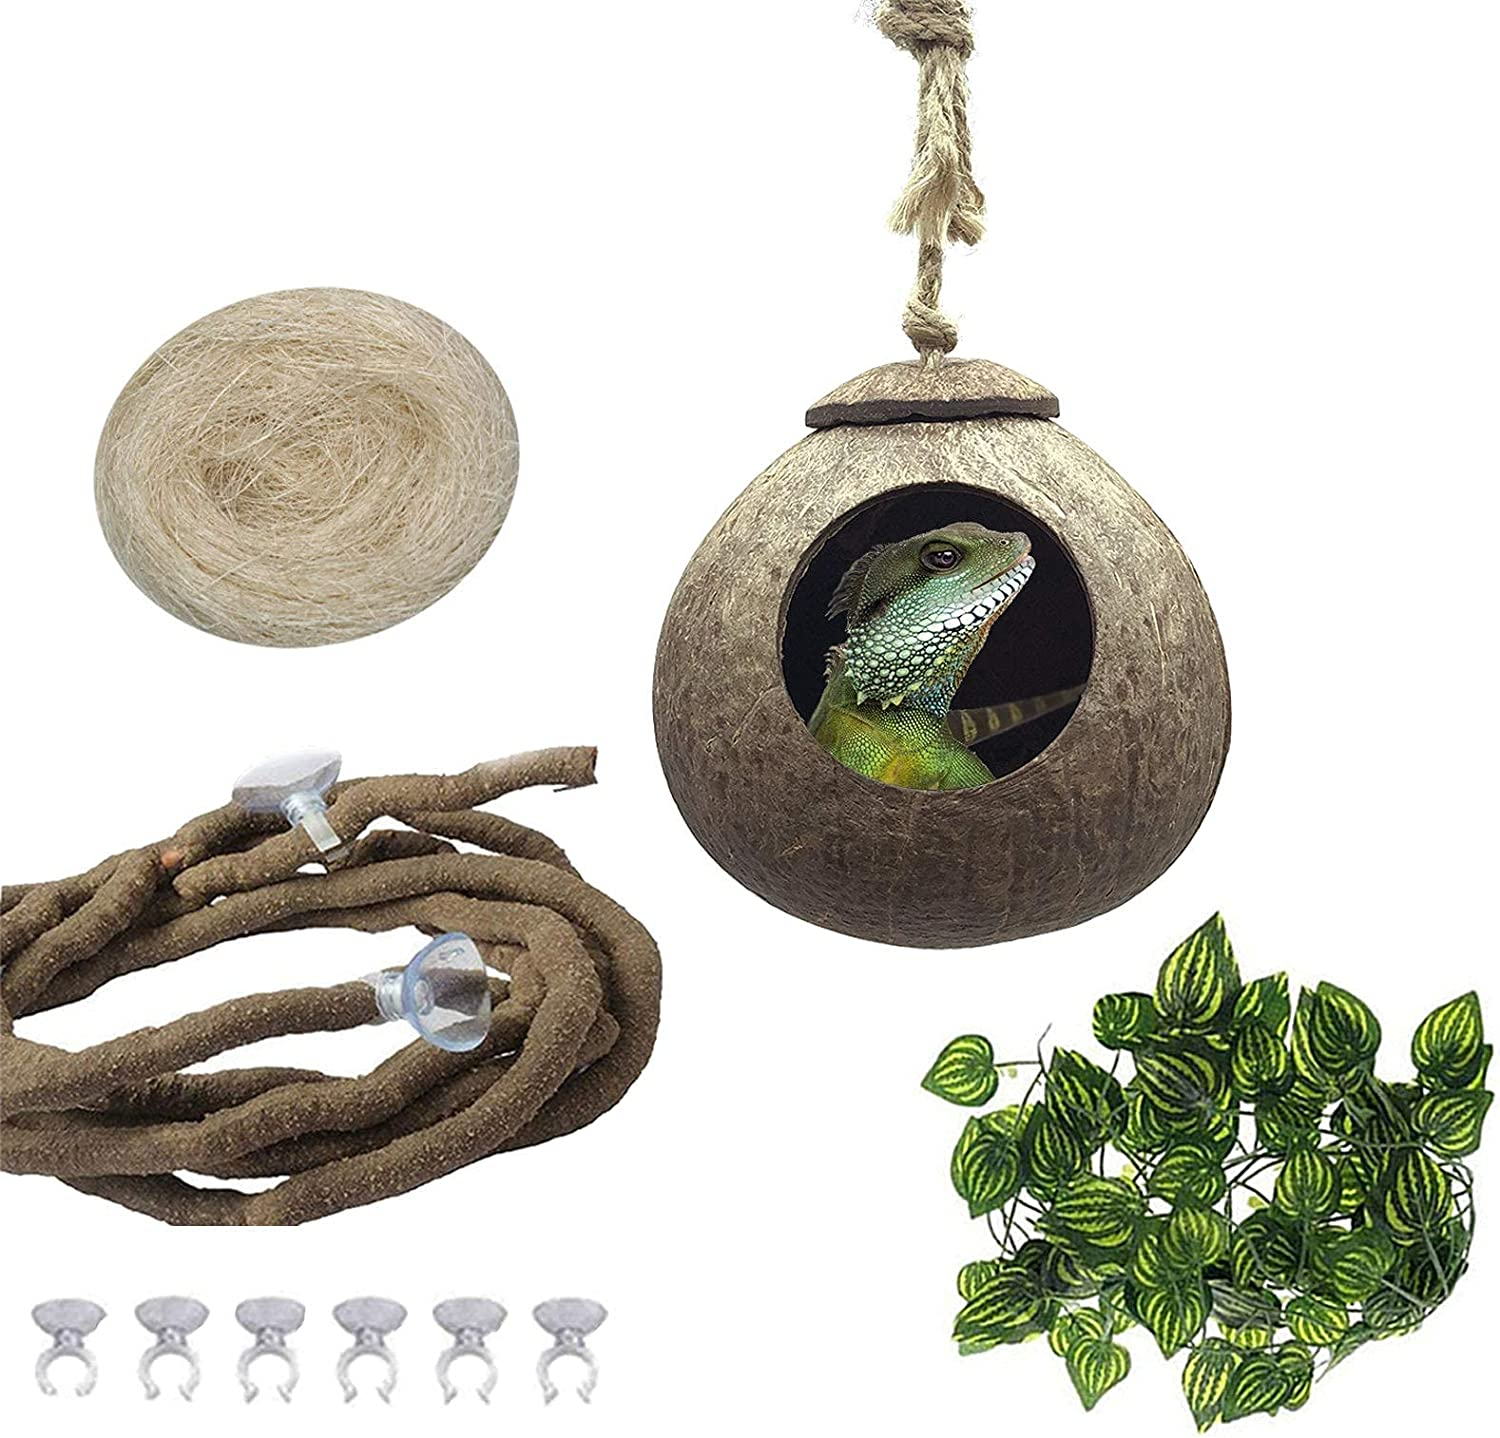 PINVNBY Crested Gecko Coco Hut Lizard Natural Coconut Shell Nest Durable Hanging Cave Habitat Climbing Porch Hiding Sleeping Breeding Pad Coconut House Texture for Reptiles,Amphibians